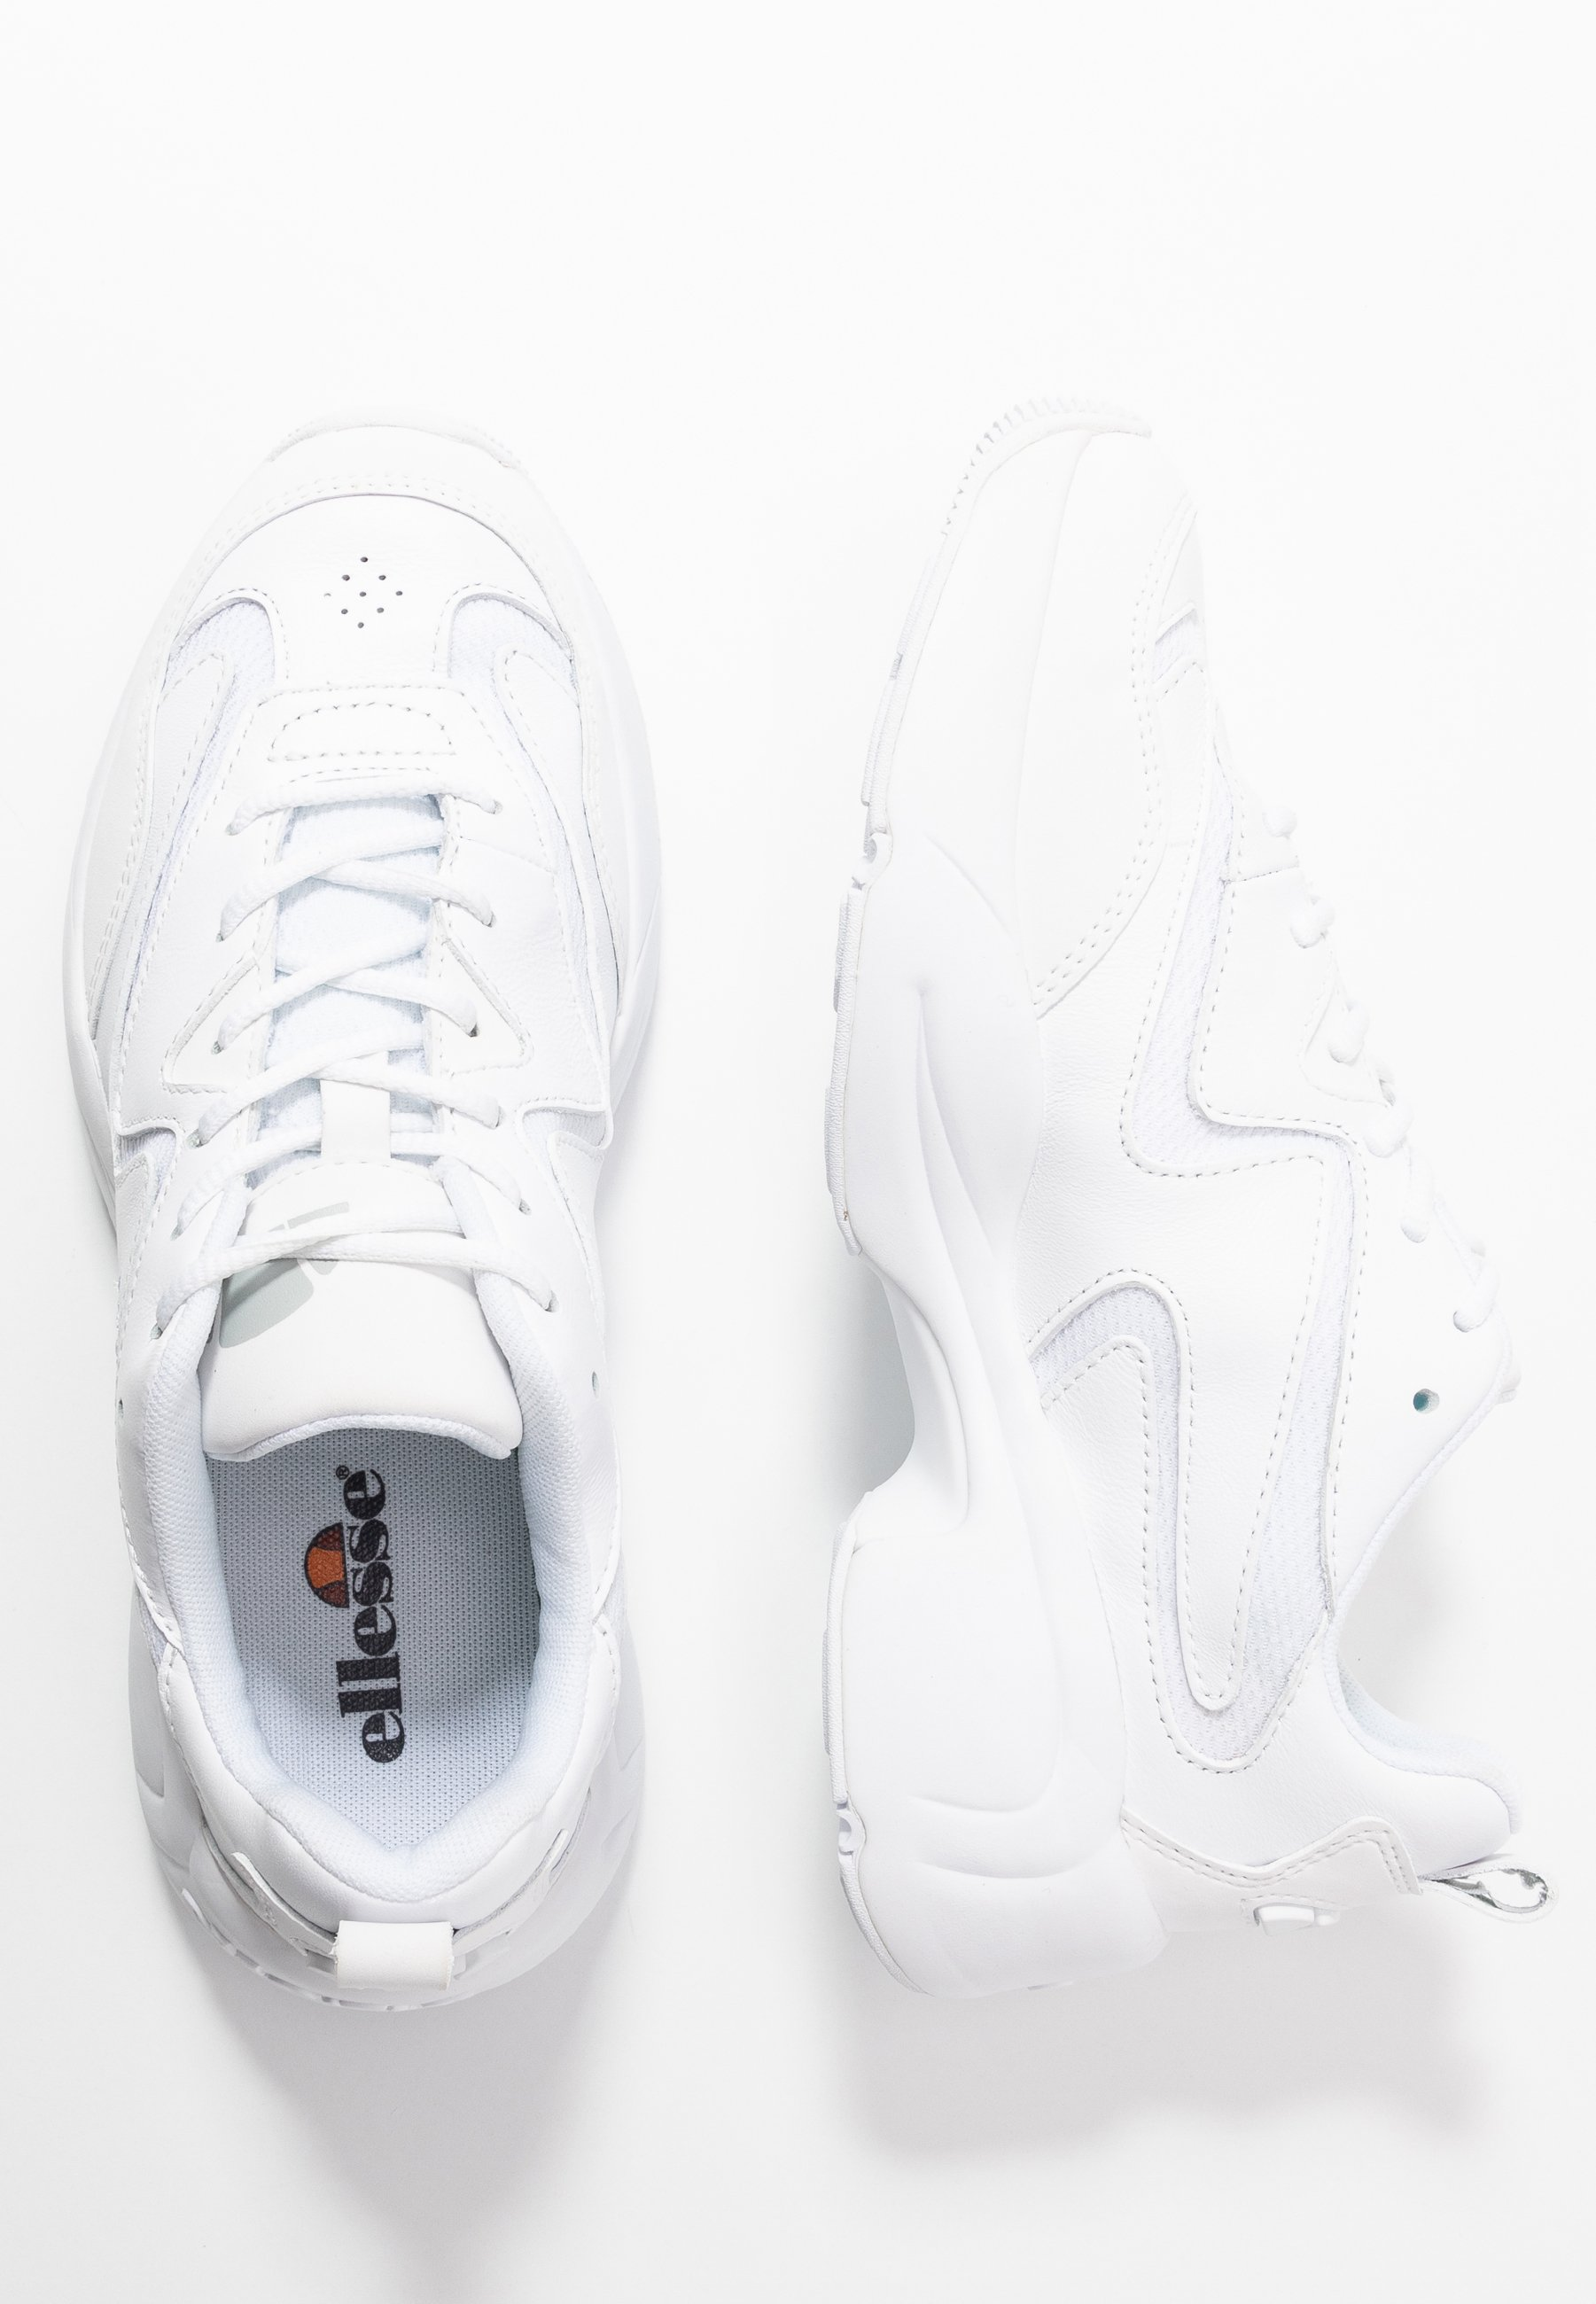 INDUS Sneakers white